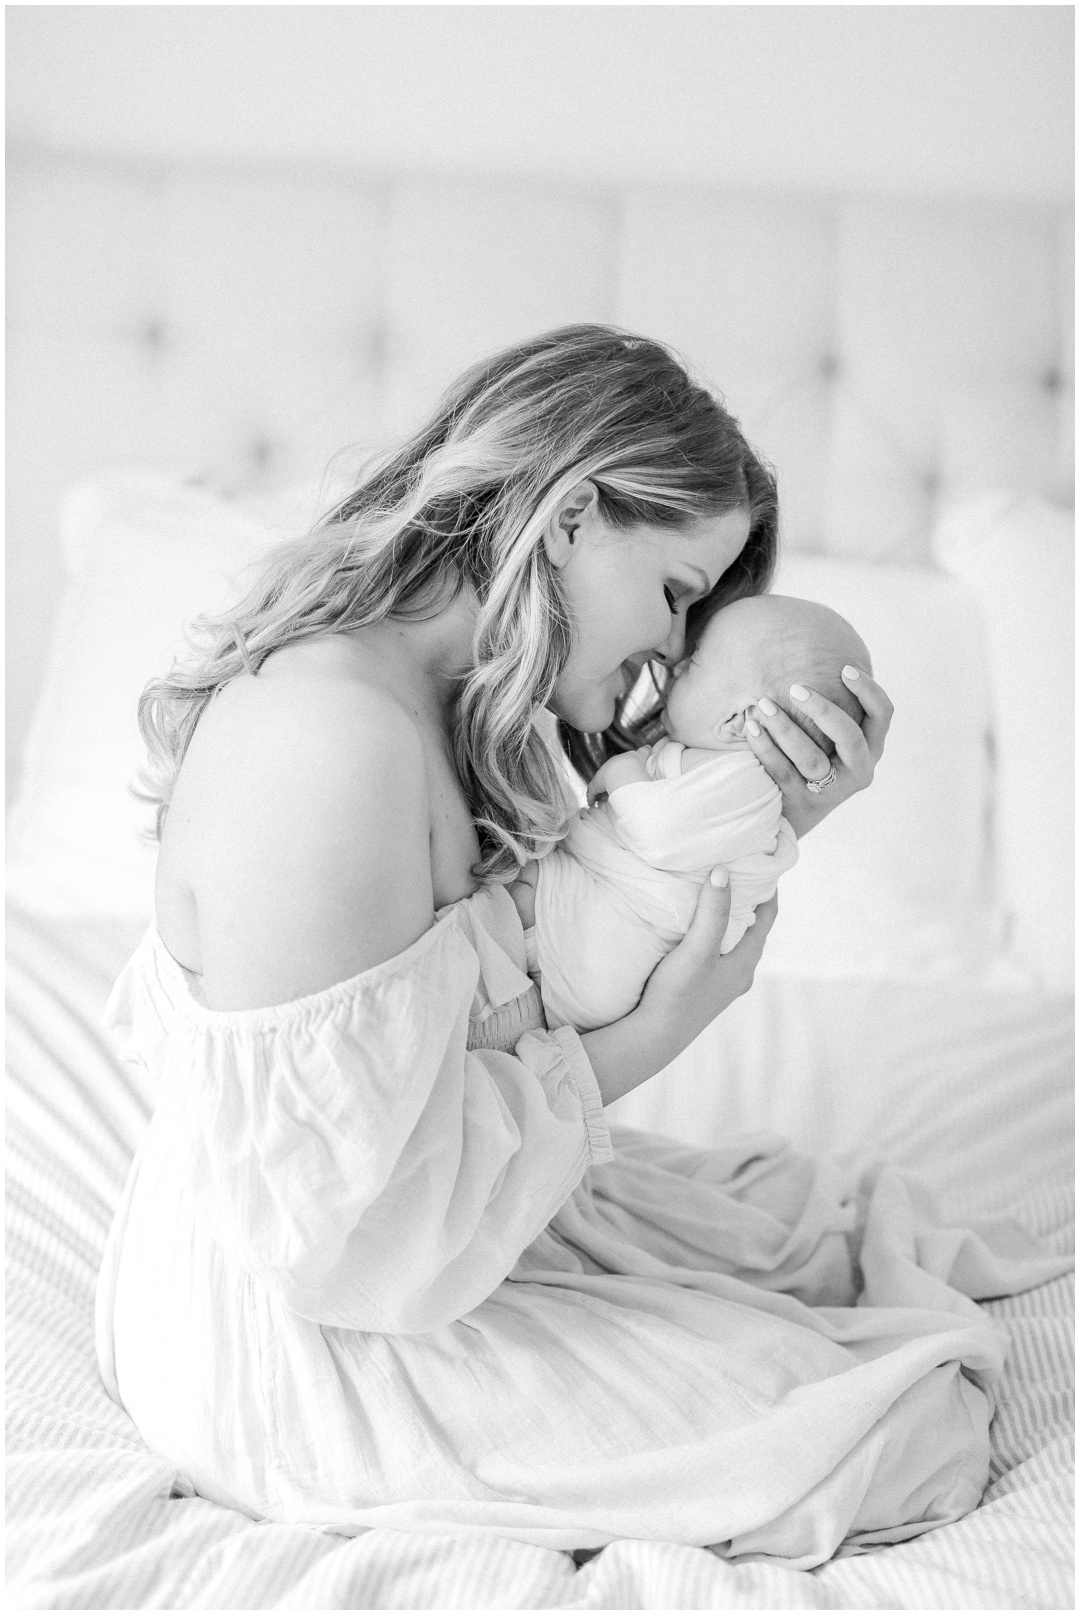 Newport_Beach_Newborn_Light_Airy_Natural_Photographer_Newport_Beach_In-Home_Photographer_Orange_County_Family_Photographer_Cori_Kleckner_Photography_Huntington_Beach_Photographer_Family_OC_Newborn_Meghan_Sullivan_Newborn_Family_Greer_Sullivan_3250.jpg